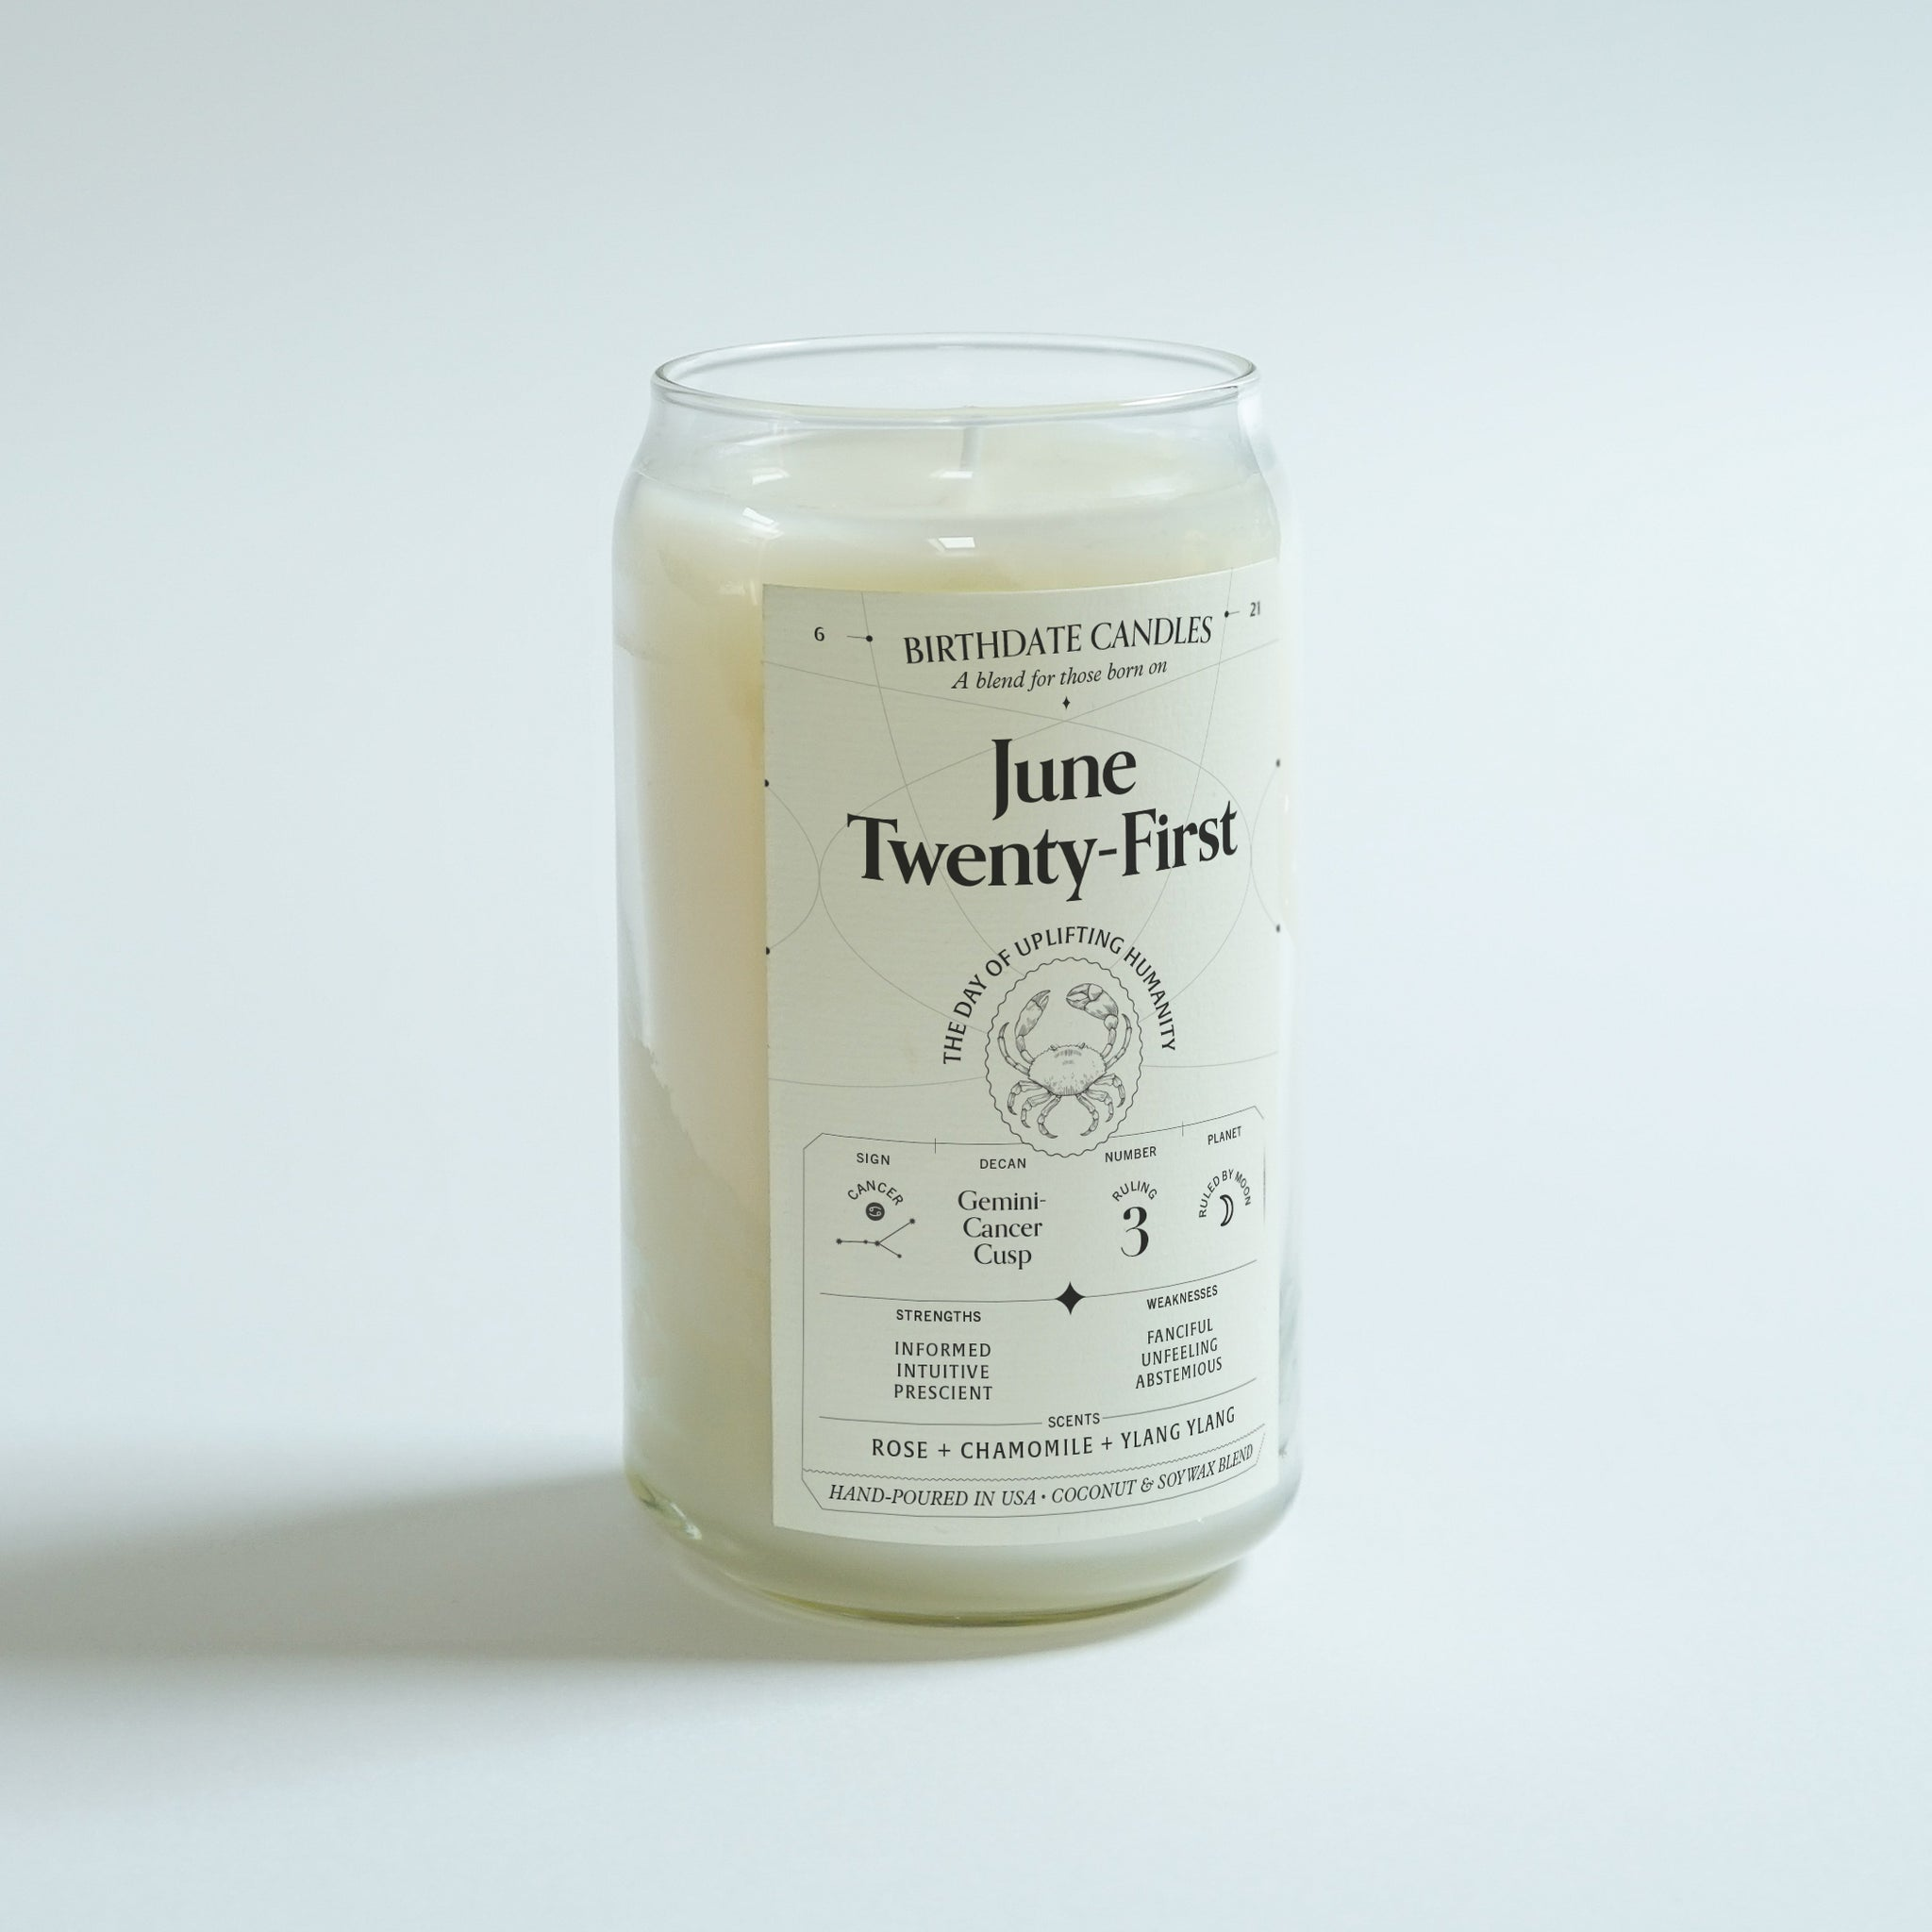 The June Twenty-First Birthday Candle